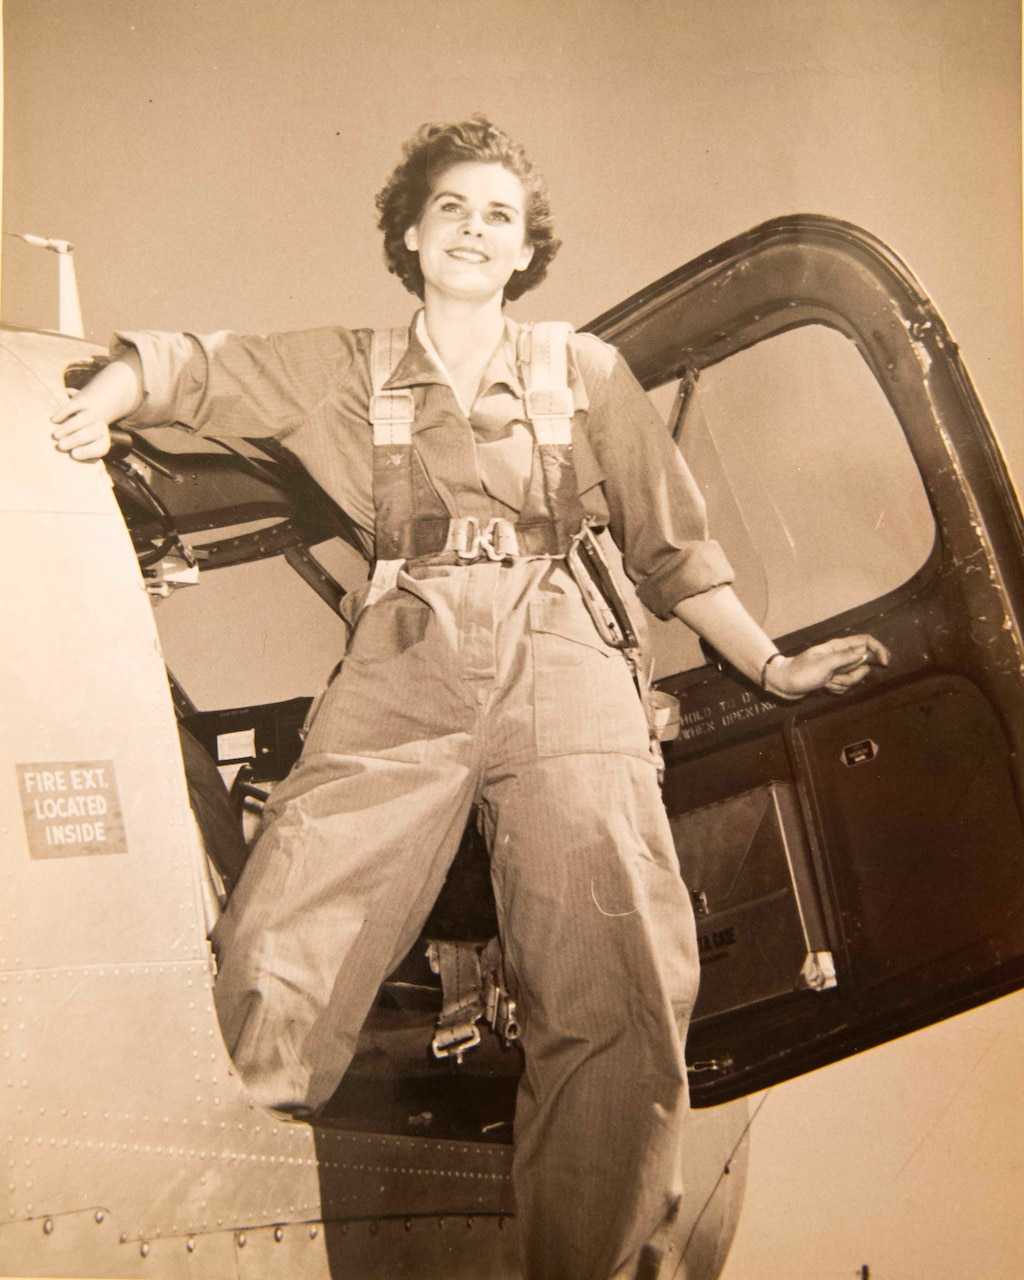 A World War II-era photo shows a woman in a flight suit stepping out of a military aircraft.